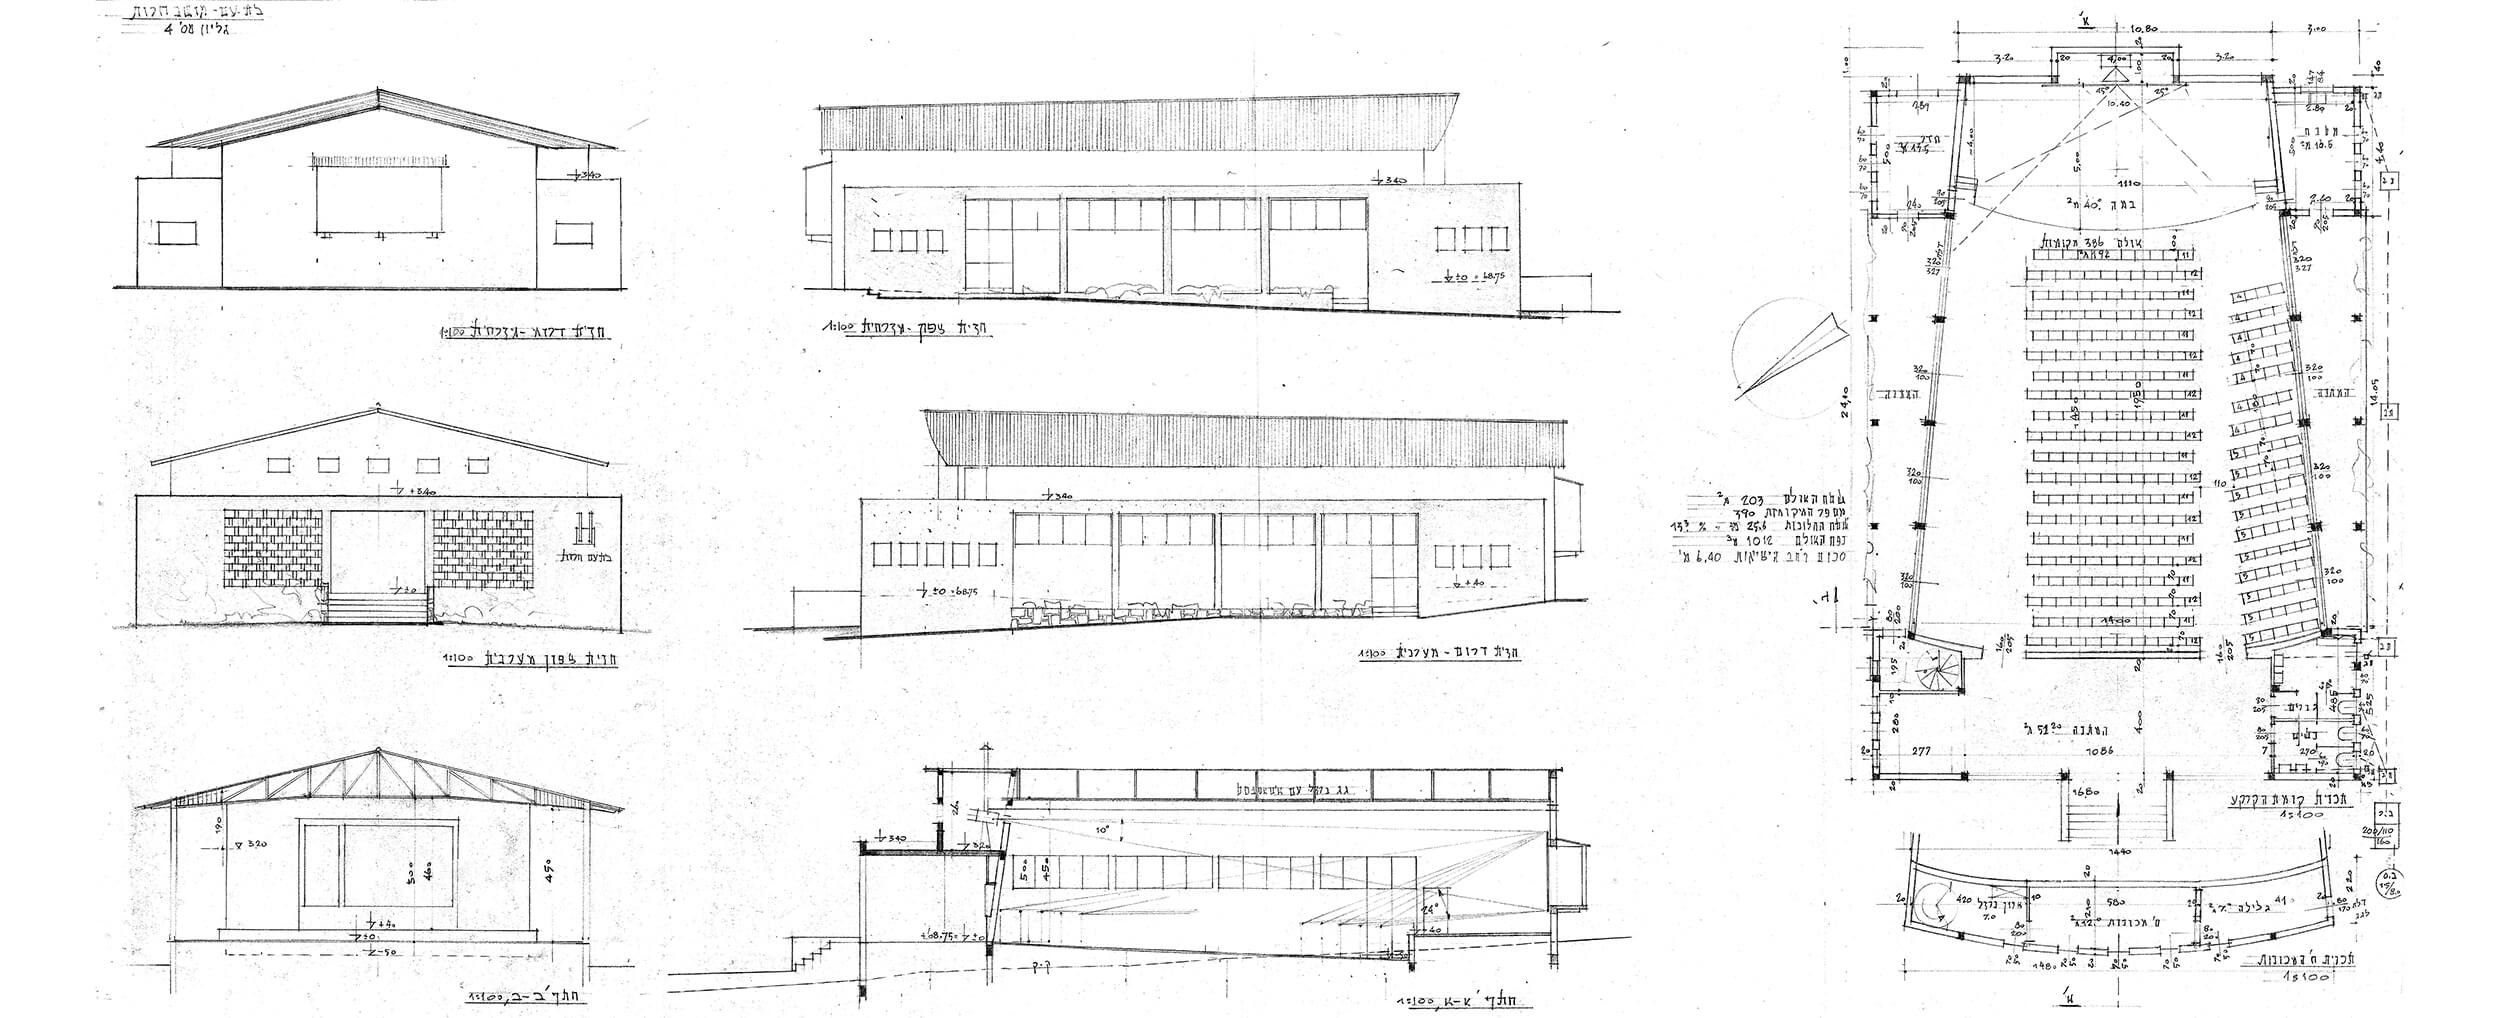 Plan, Façades and Sections